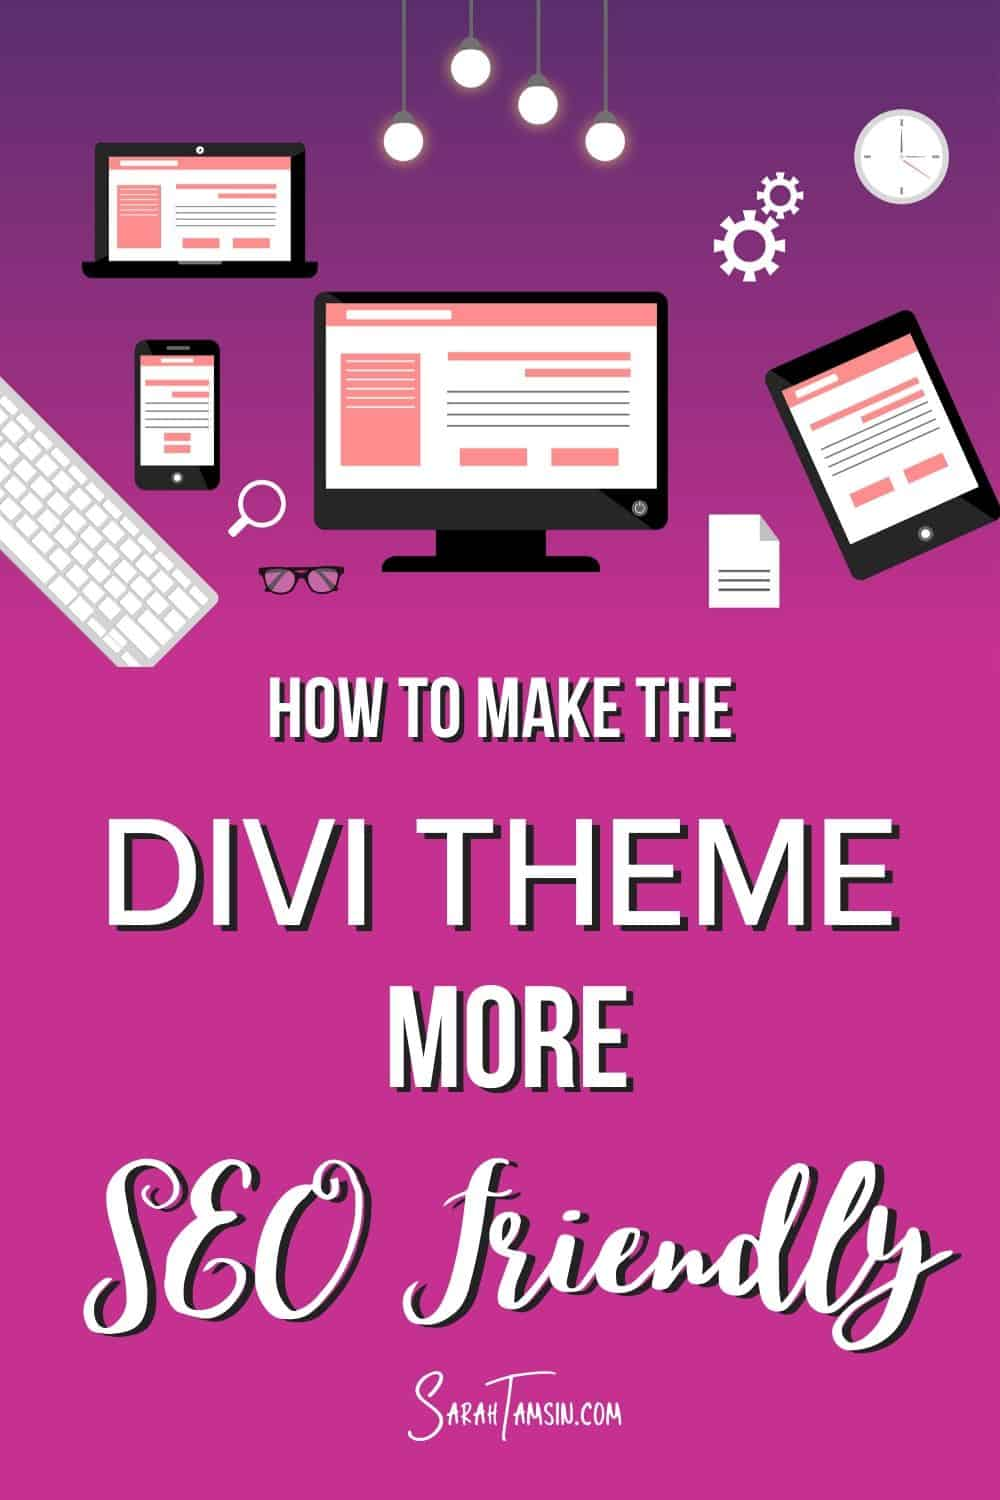 How to make the Divi Theme more SEO Friendly